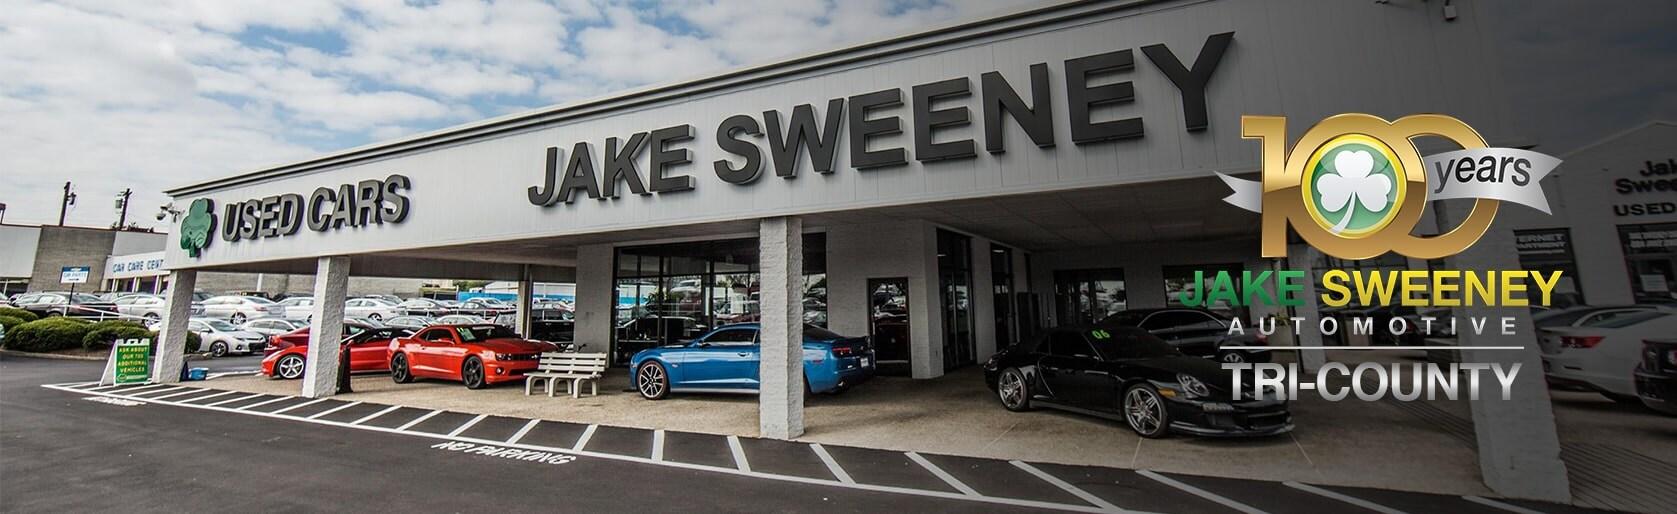 Northern Kentucky Auto Sales >> Jake Sweeney Automotive - New And Used Cars, Trucks, And SUVs For Sale In Cincinnati, Ohio And ...